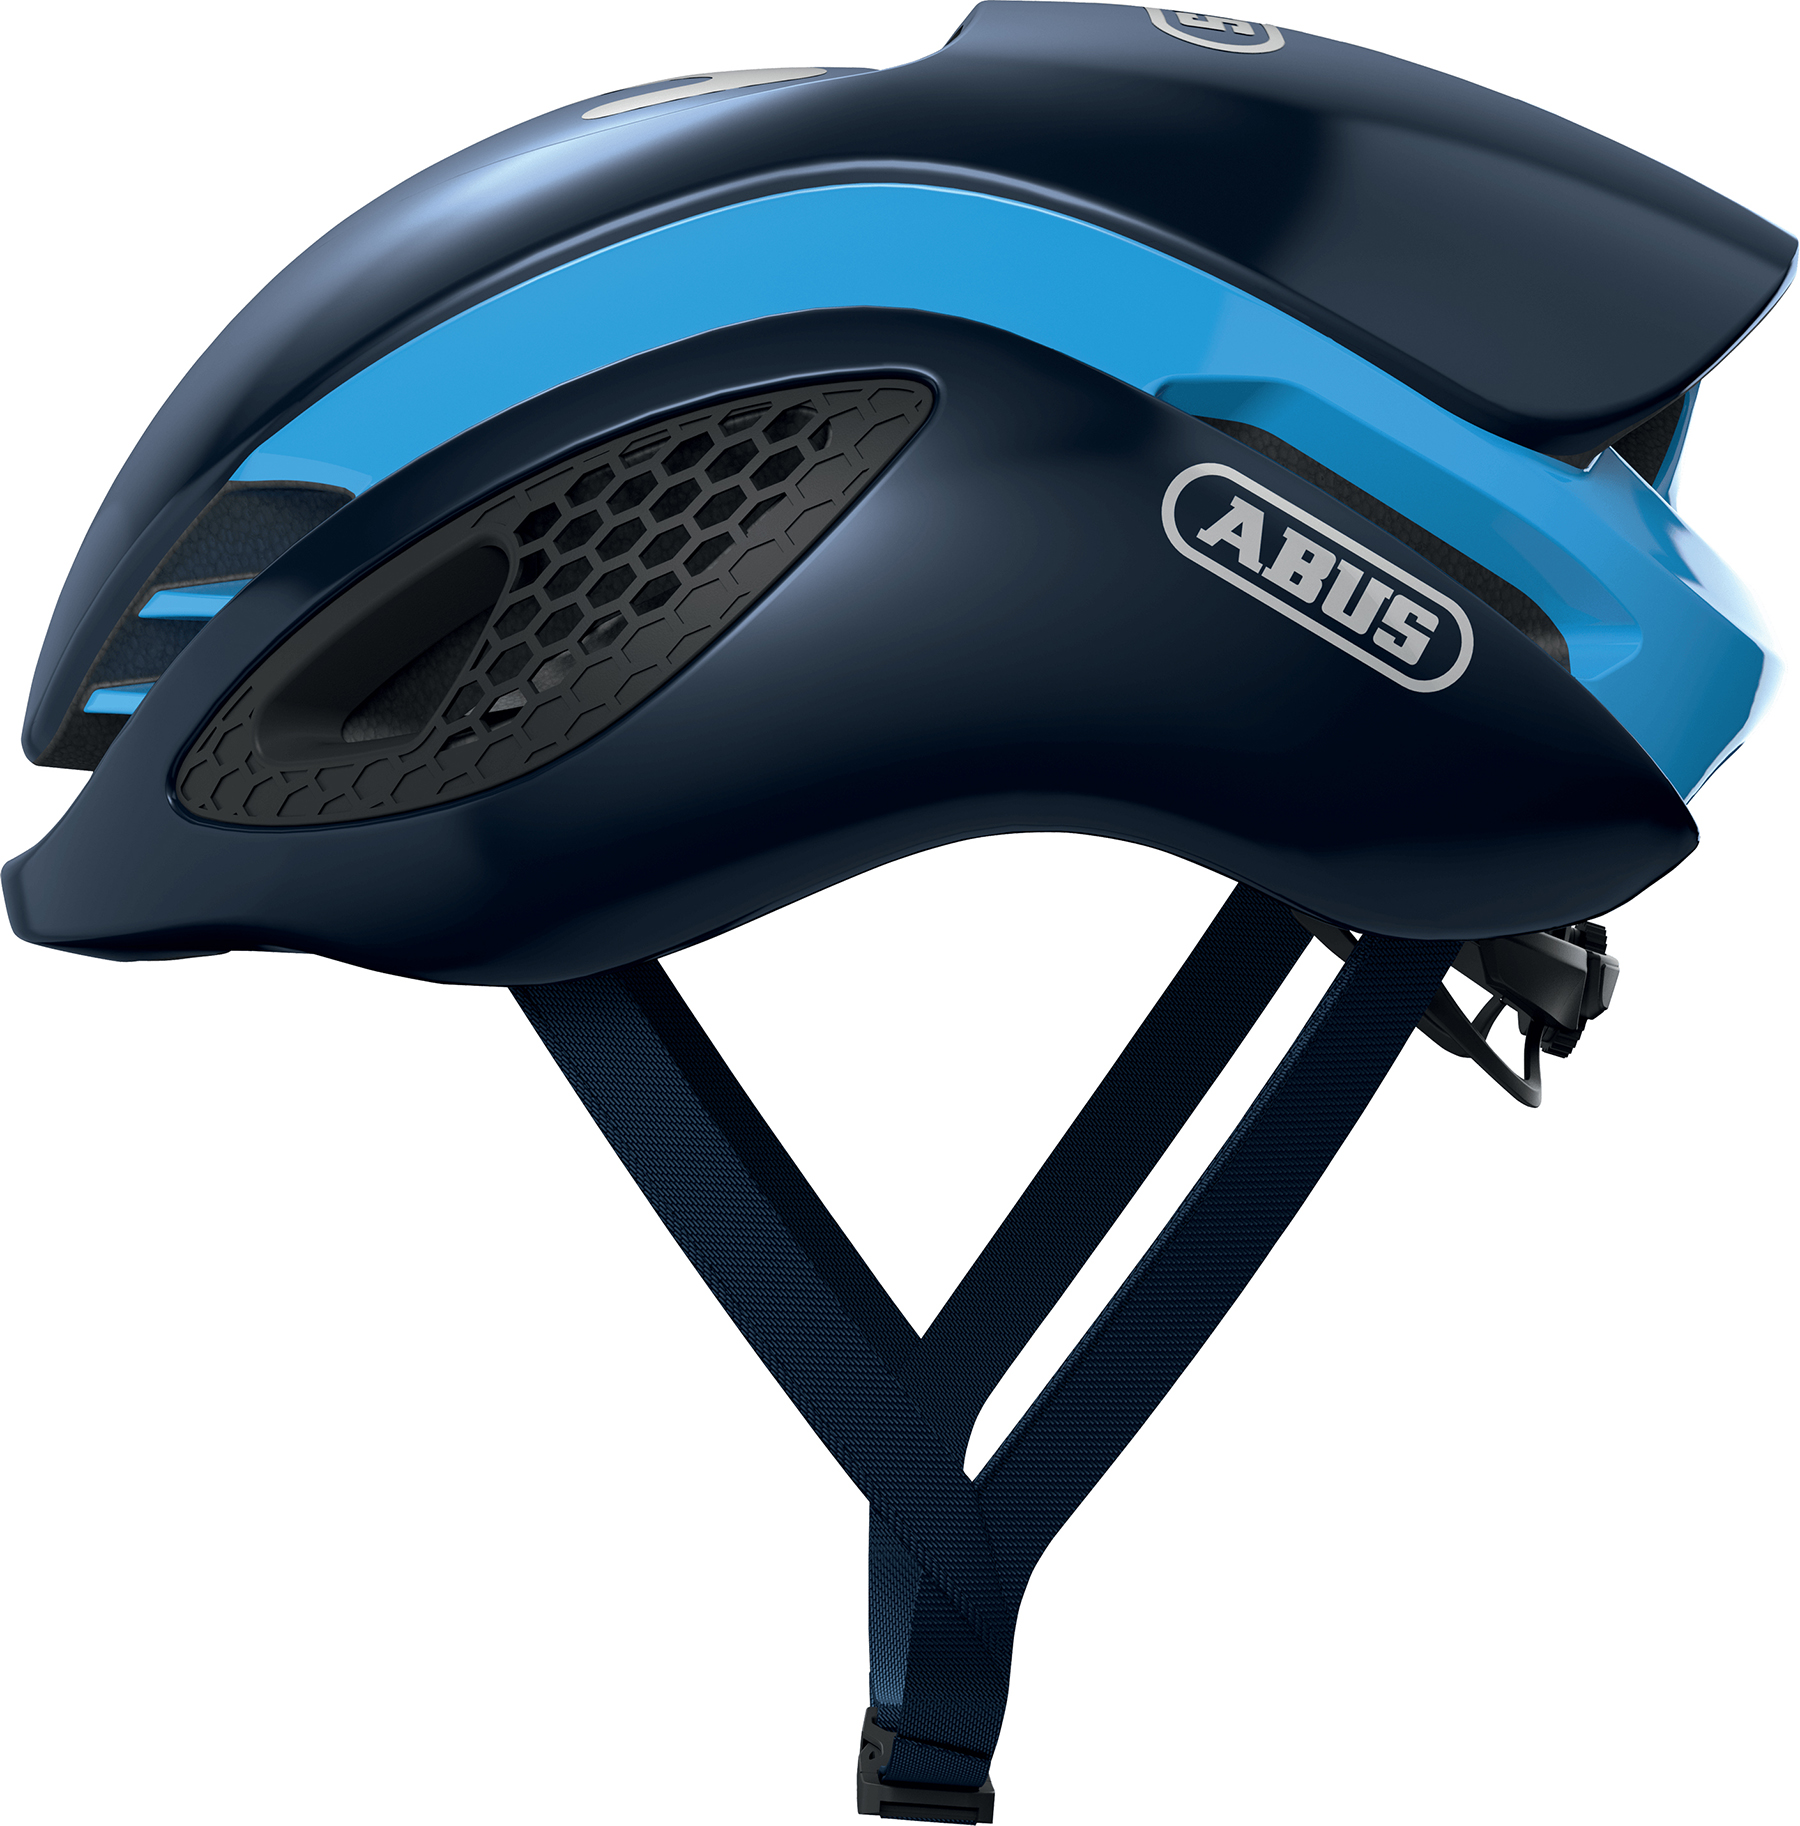 Abus Gamechanger Road Helmet 2020 - Black, Black | bike helmet